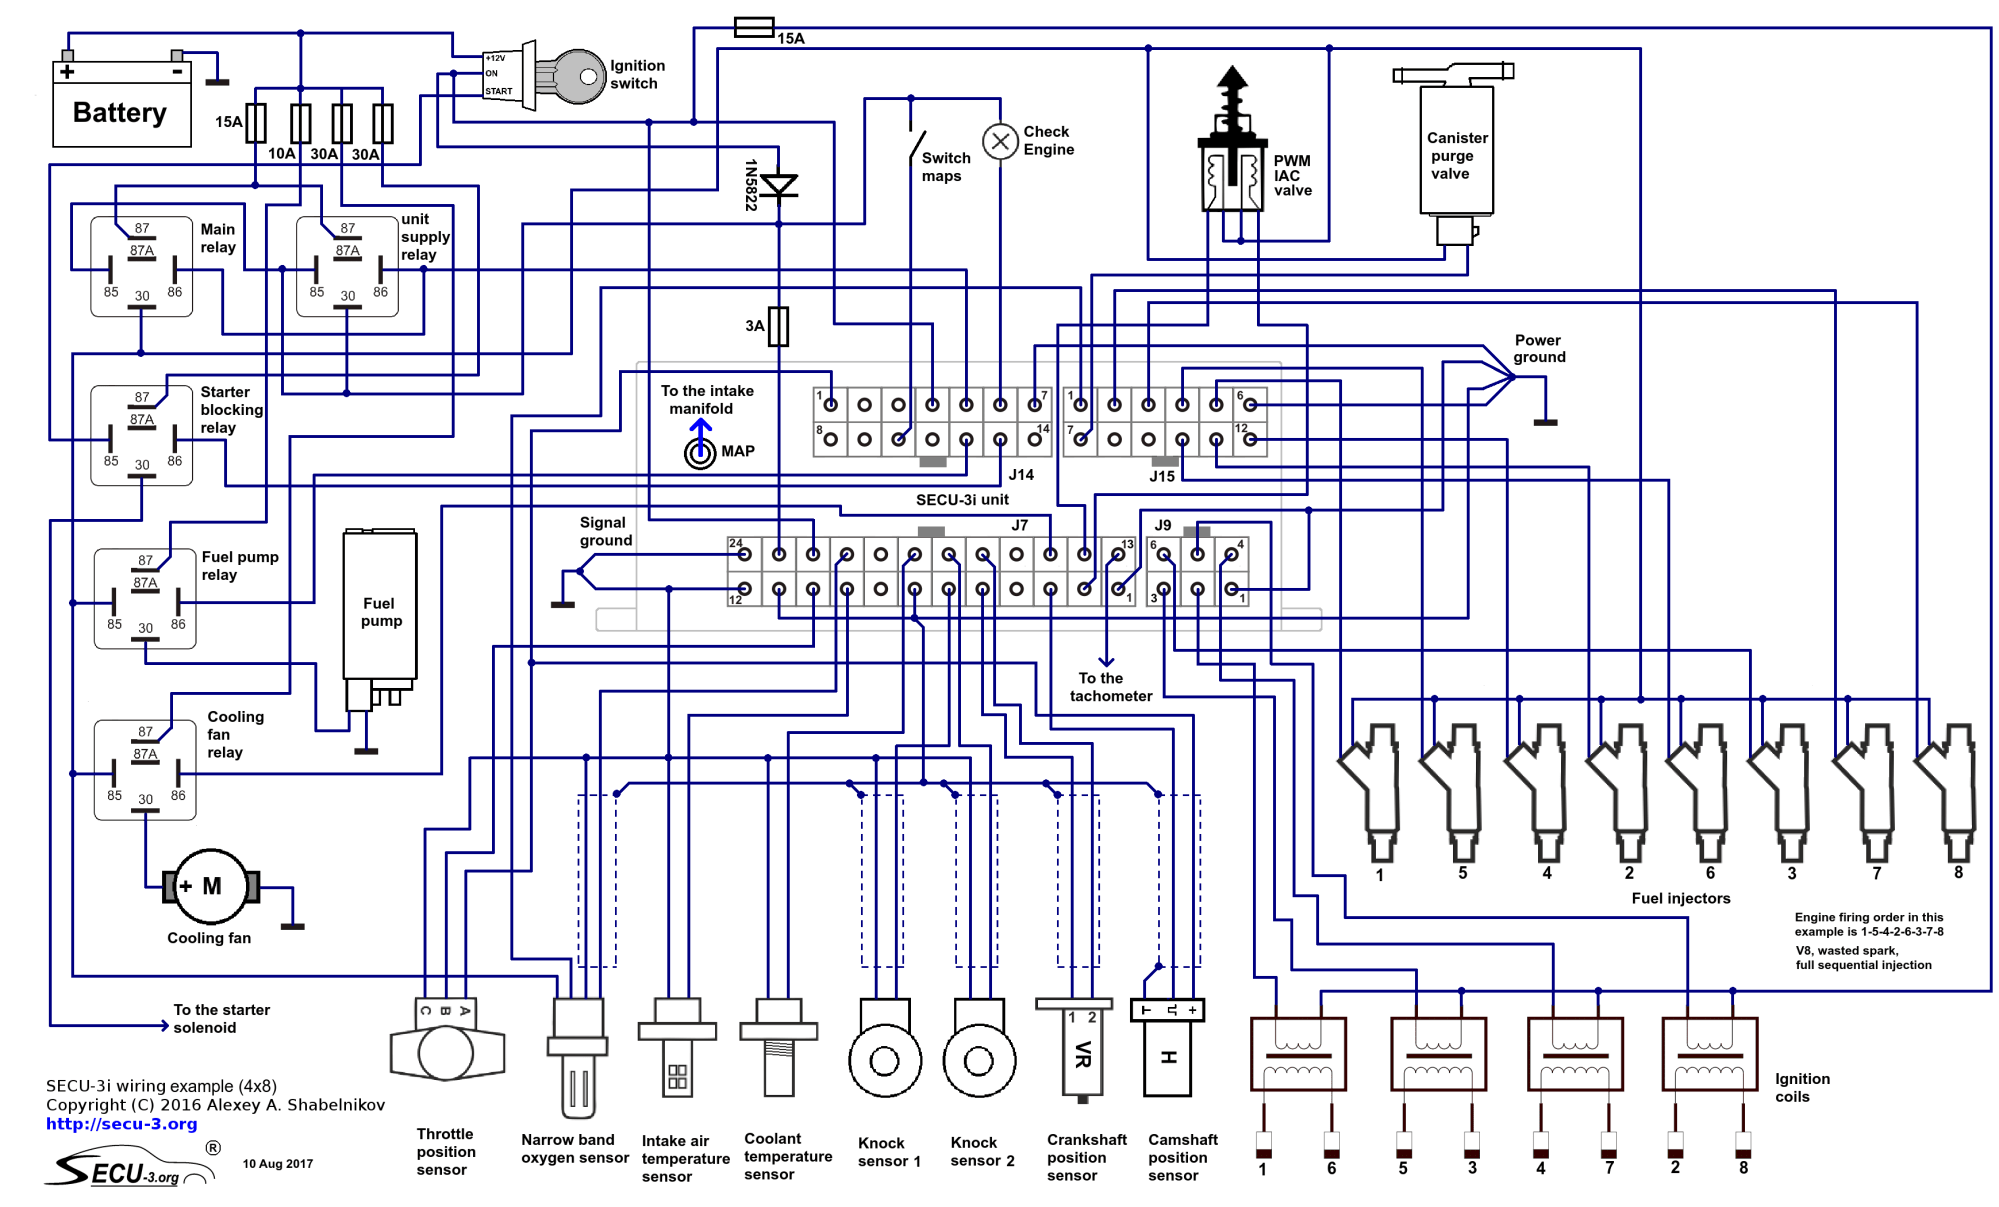 hight resolution of secu 3i wiring example for v8 full sequential injection